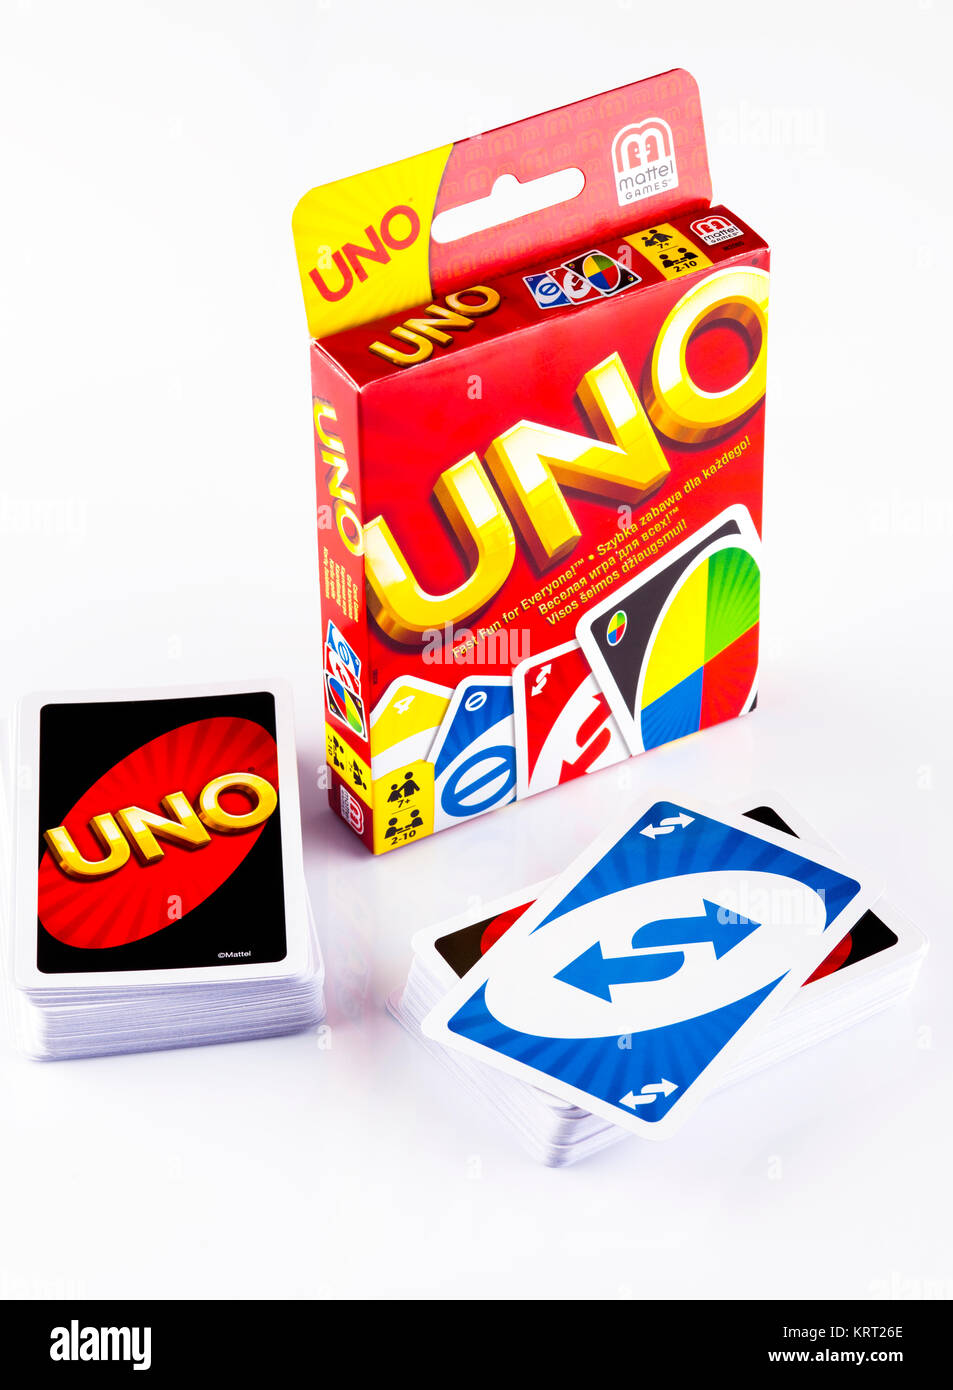 Uno Game Stock Photos & Uno Game Stock Images - Alamy